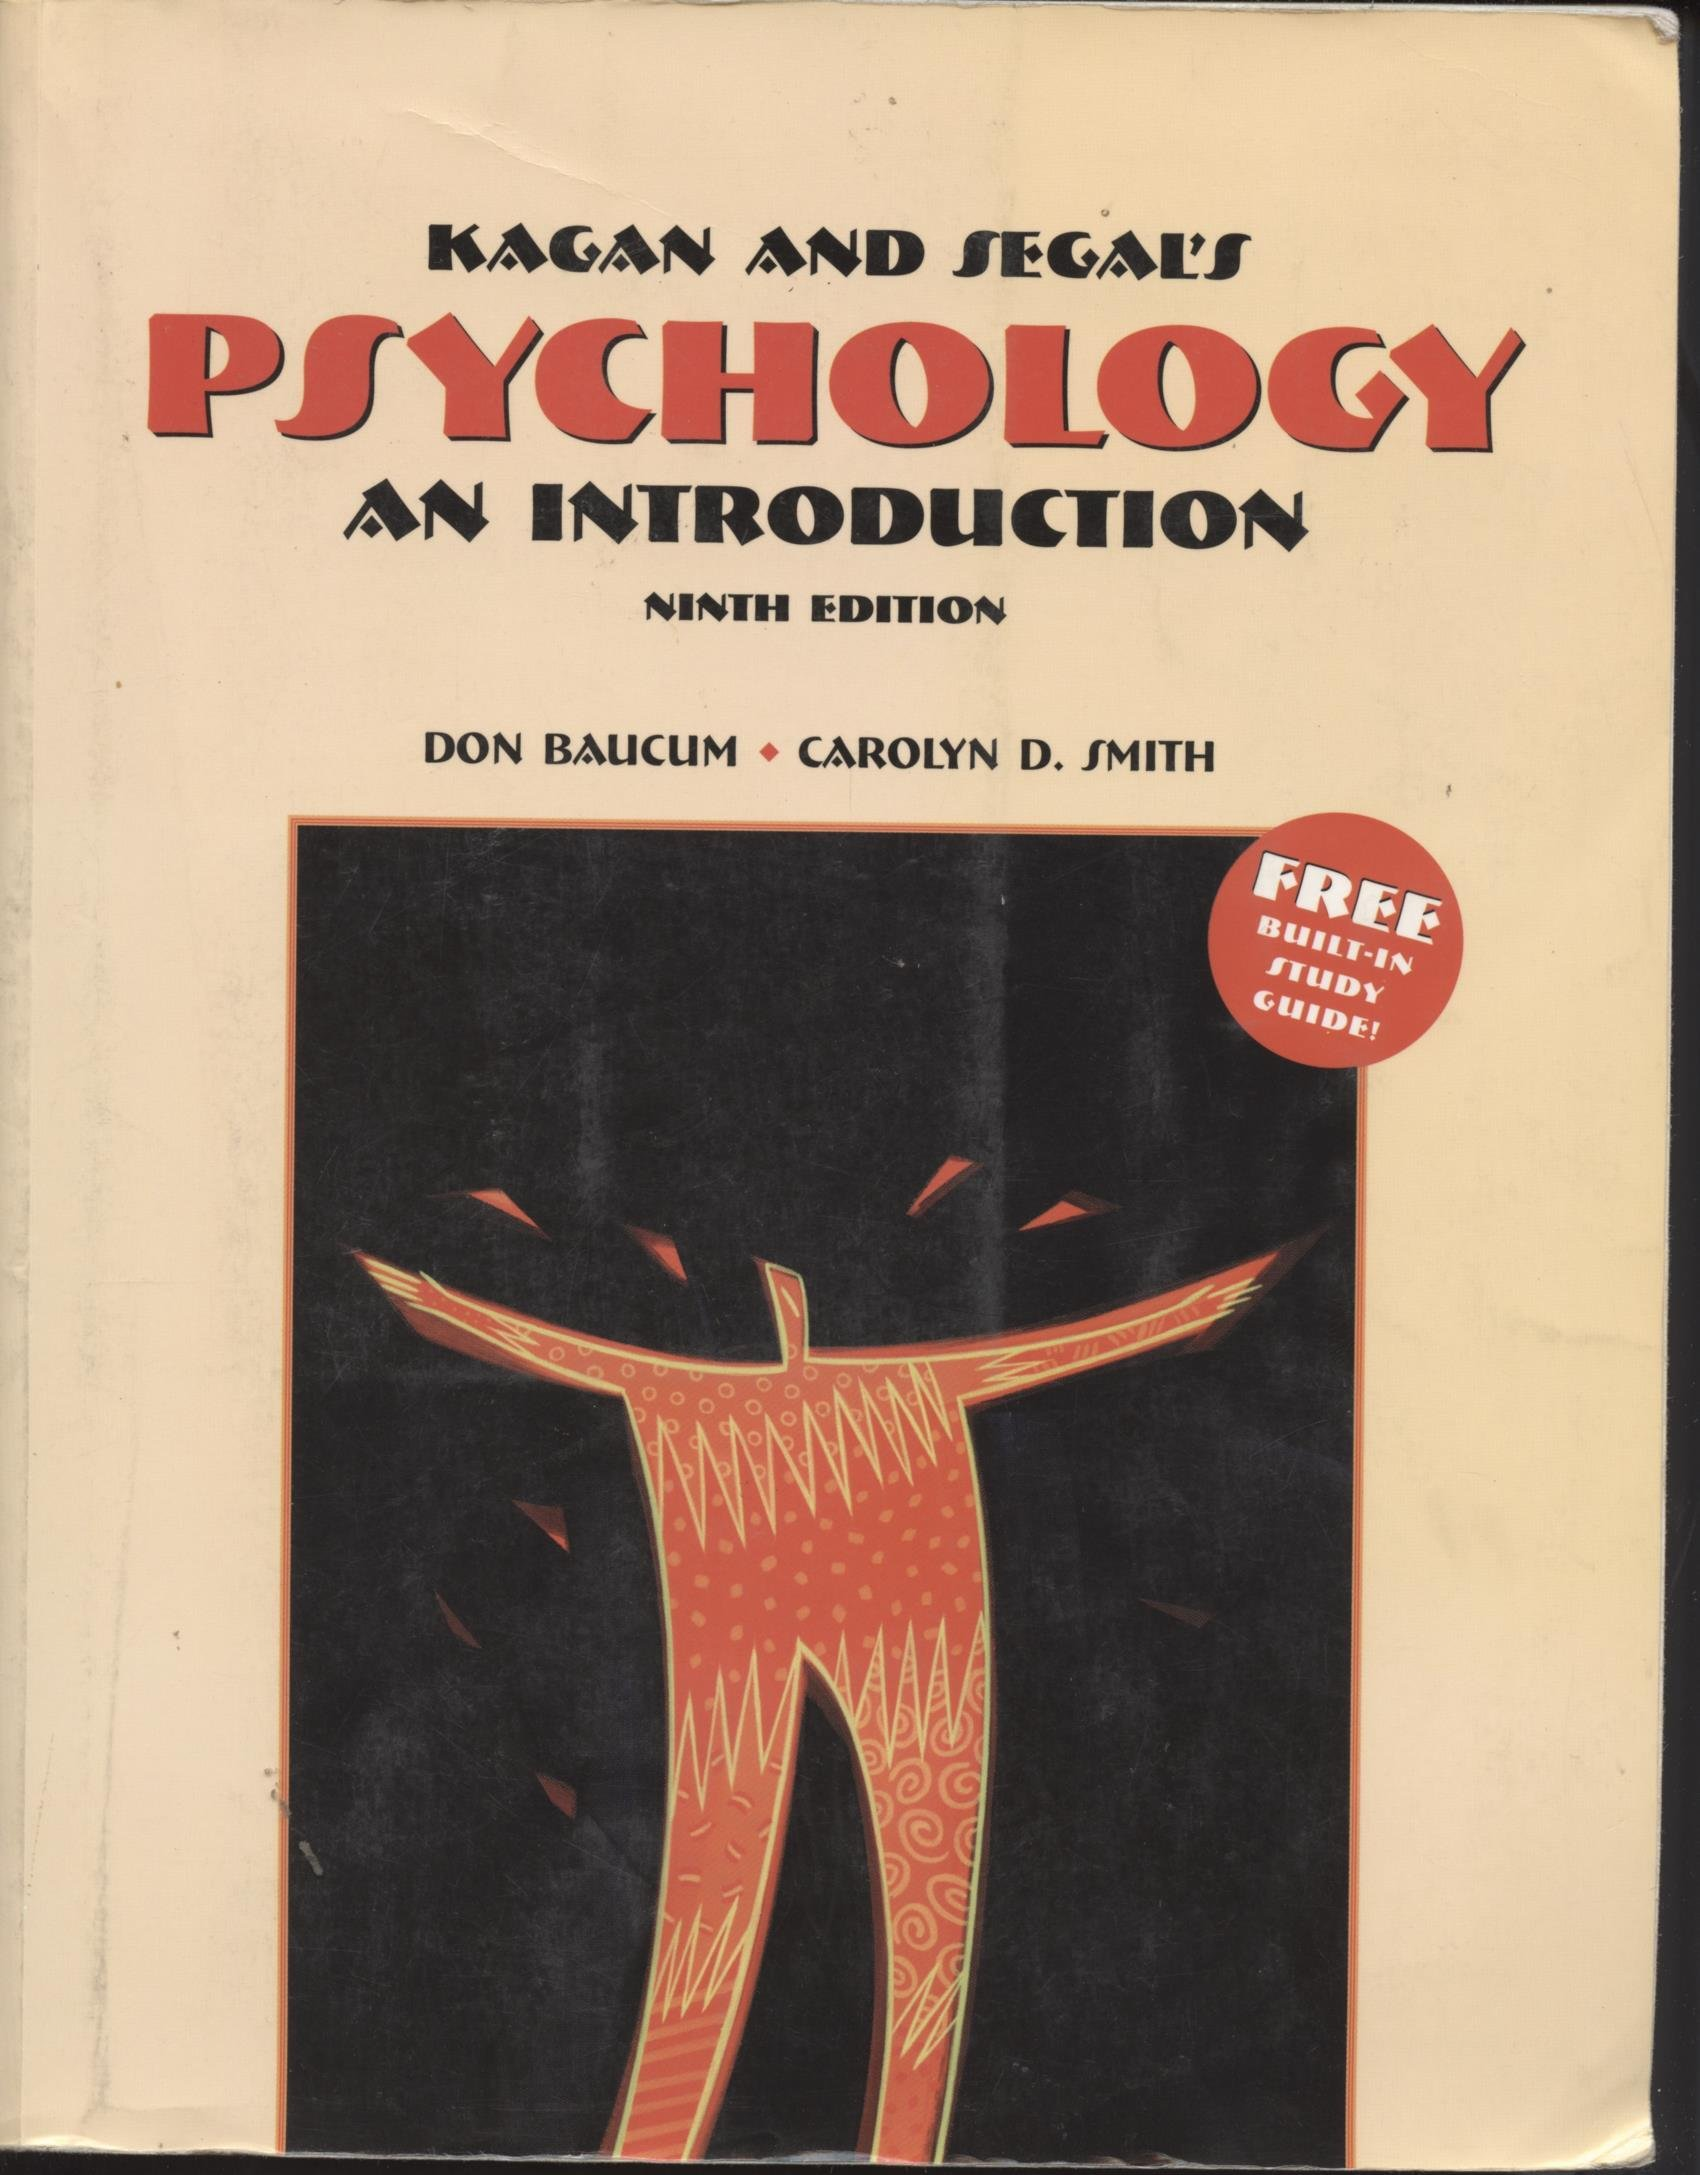 """Kagan and Segals Psychology : Introduction"""" 9TH EDITION: Don Baucum,  Carolyn D. Smith: Amazon.com: Books"""